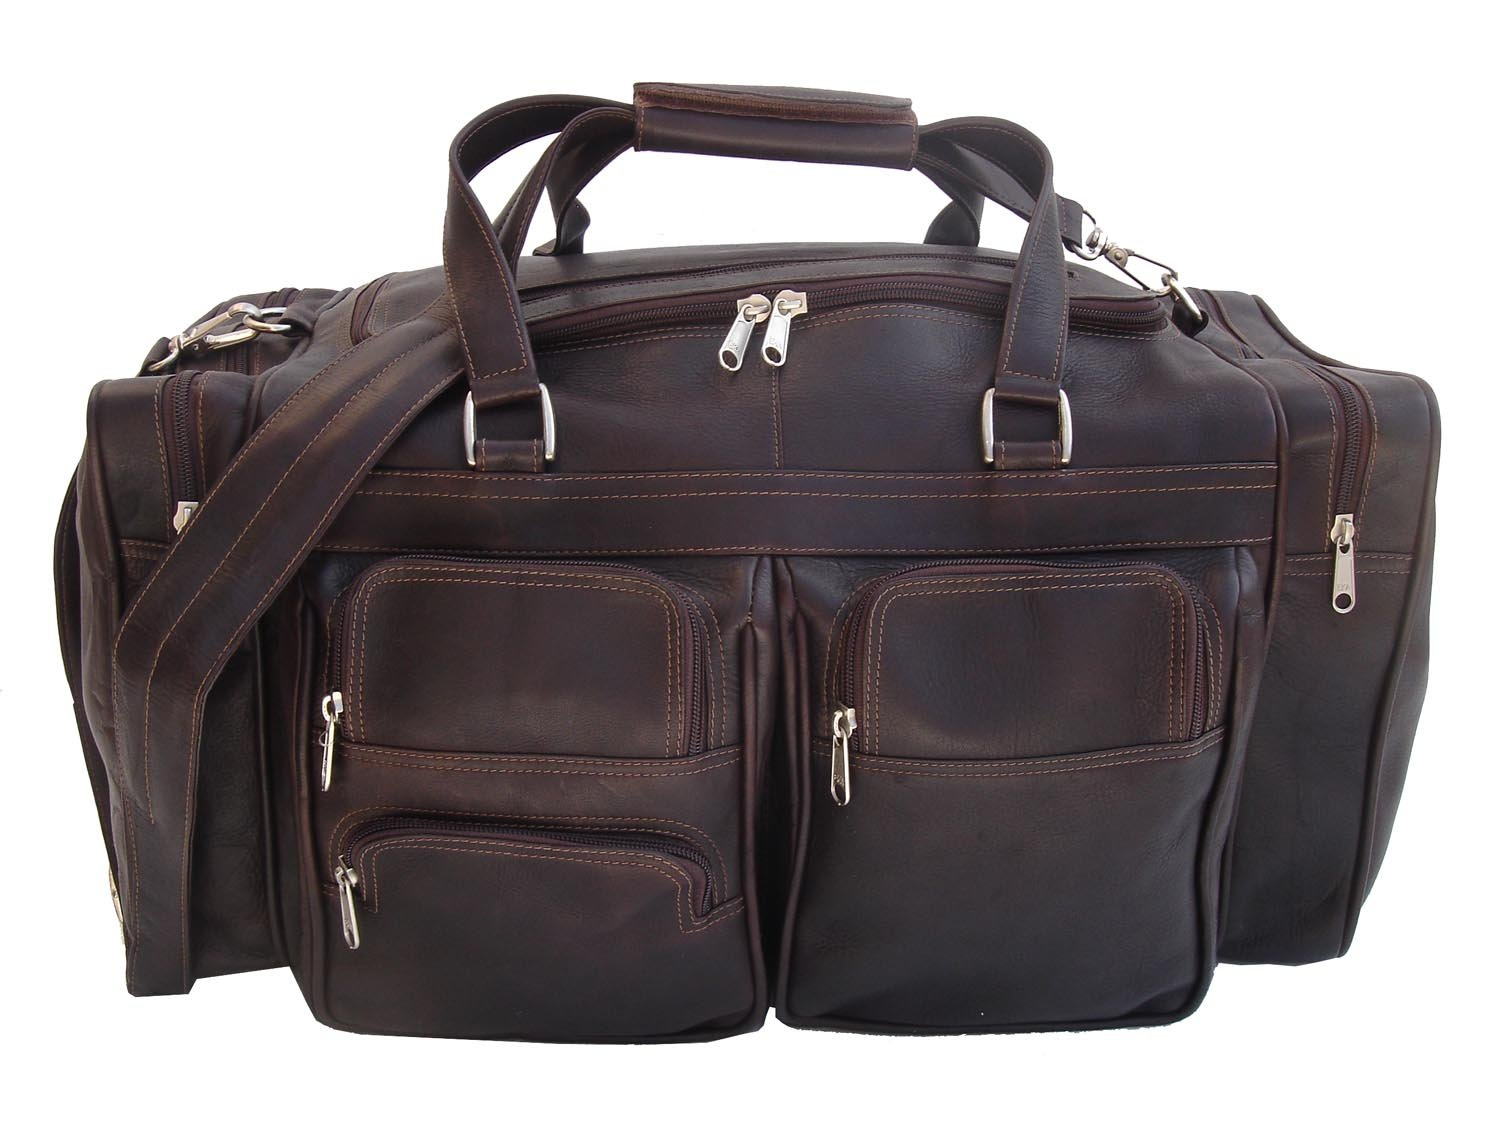 Piel Leather 20'' Duffel Bag with Pockets in Chocolate